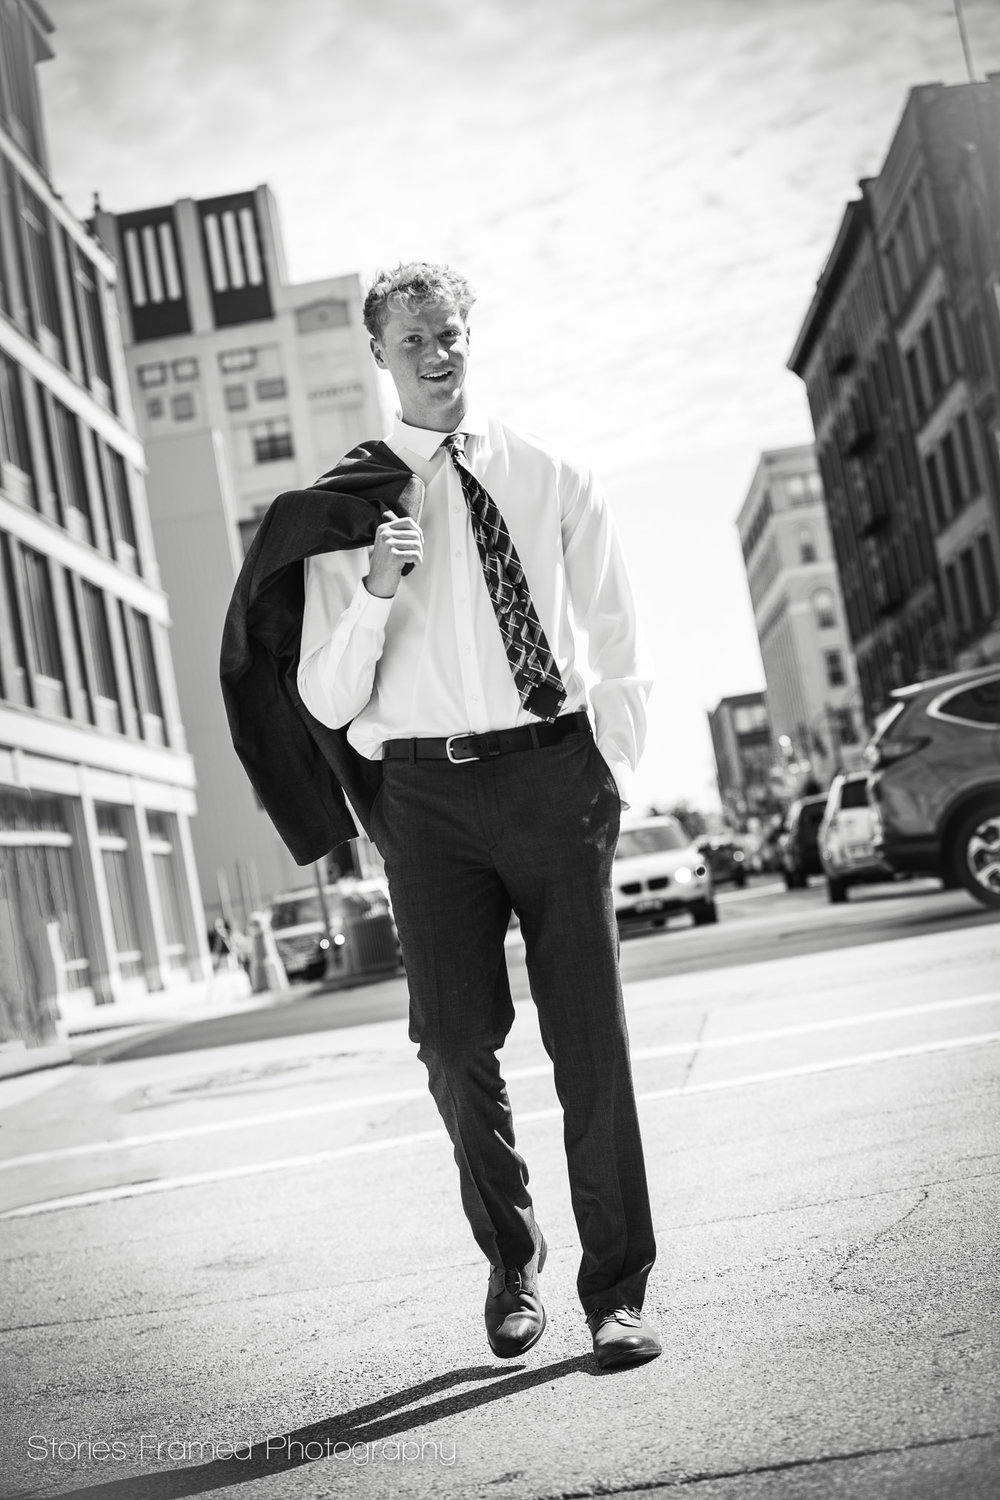 Joe-classof2018-walking-down-city-street-in-MKE